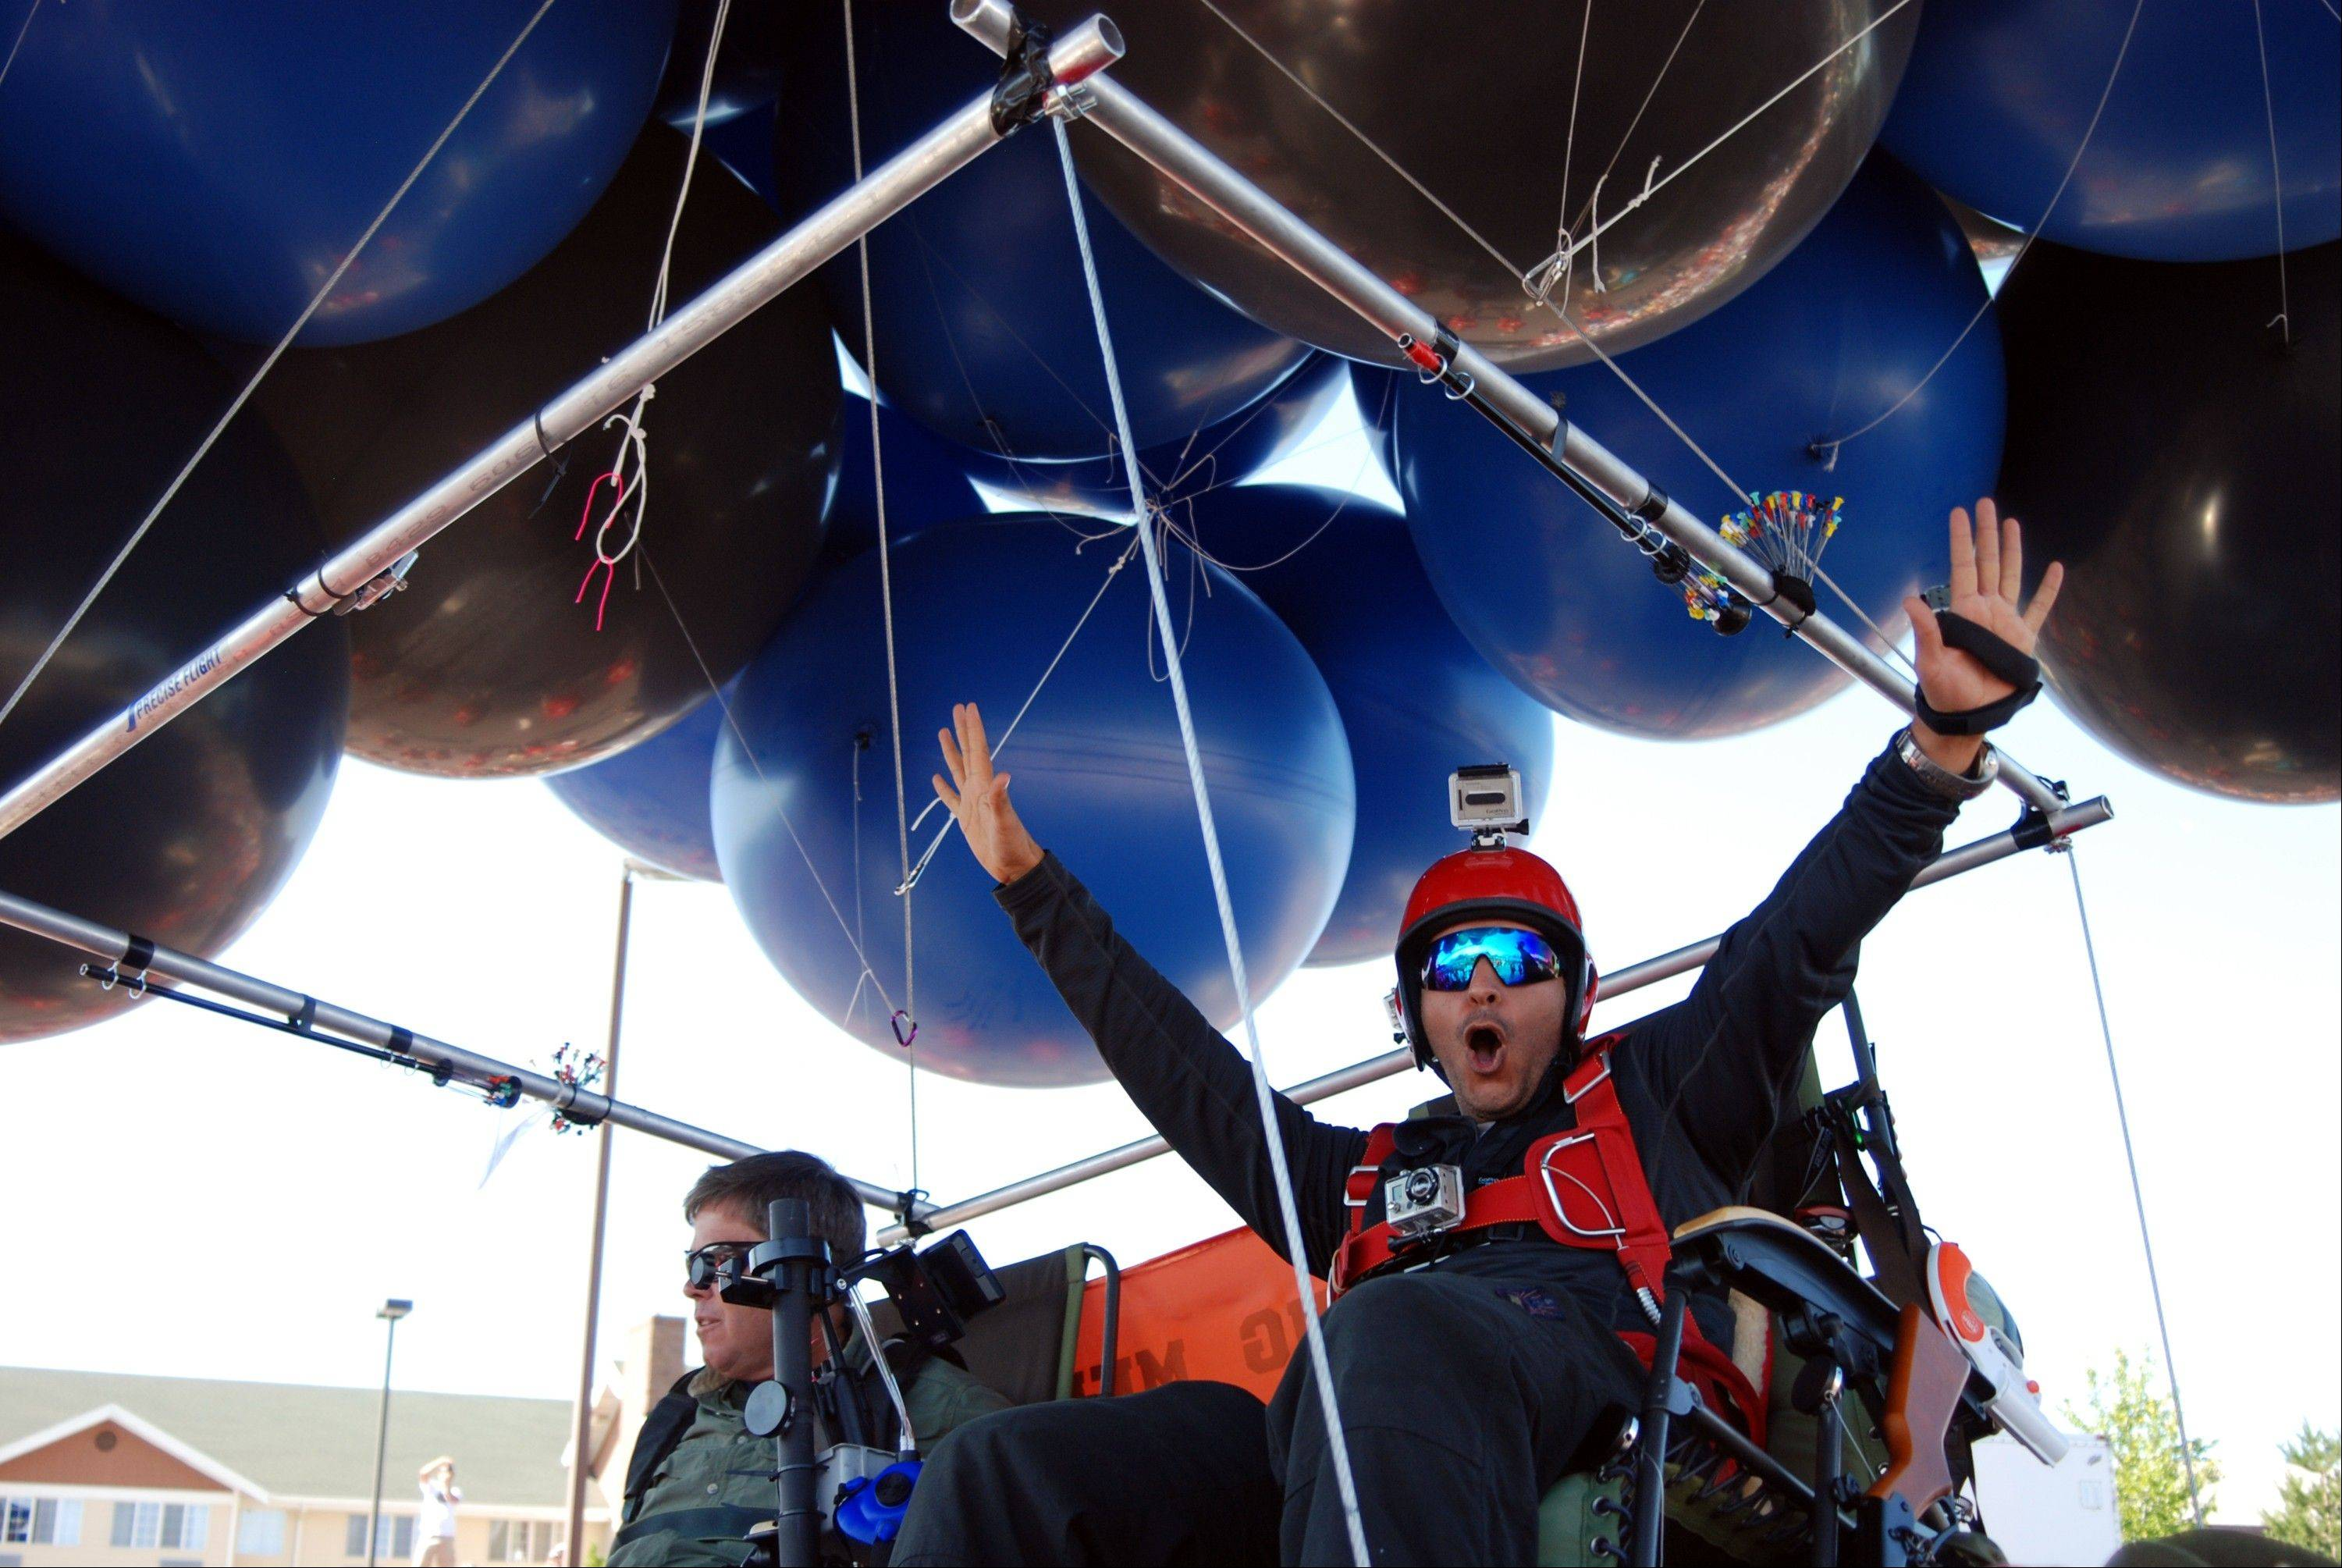 Iraqi adventurer Fareed Lafta, right, and Bend, Ore., gas station owner Kent Couch lift off Saturday from Couch's gas station in Bend, Ore., as they attempt to fly some 360 miles to Montana.